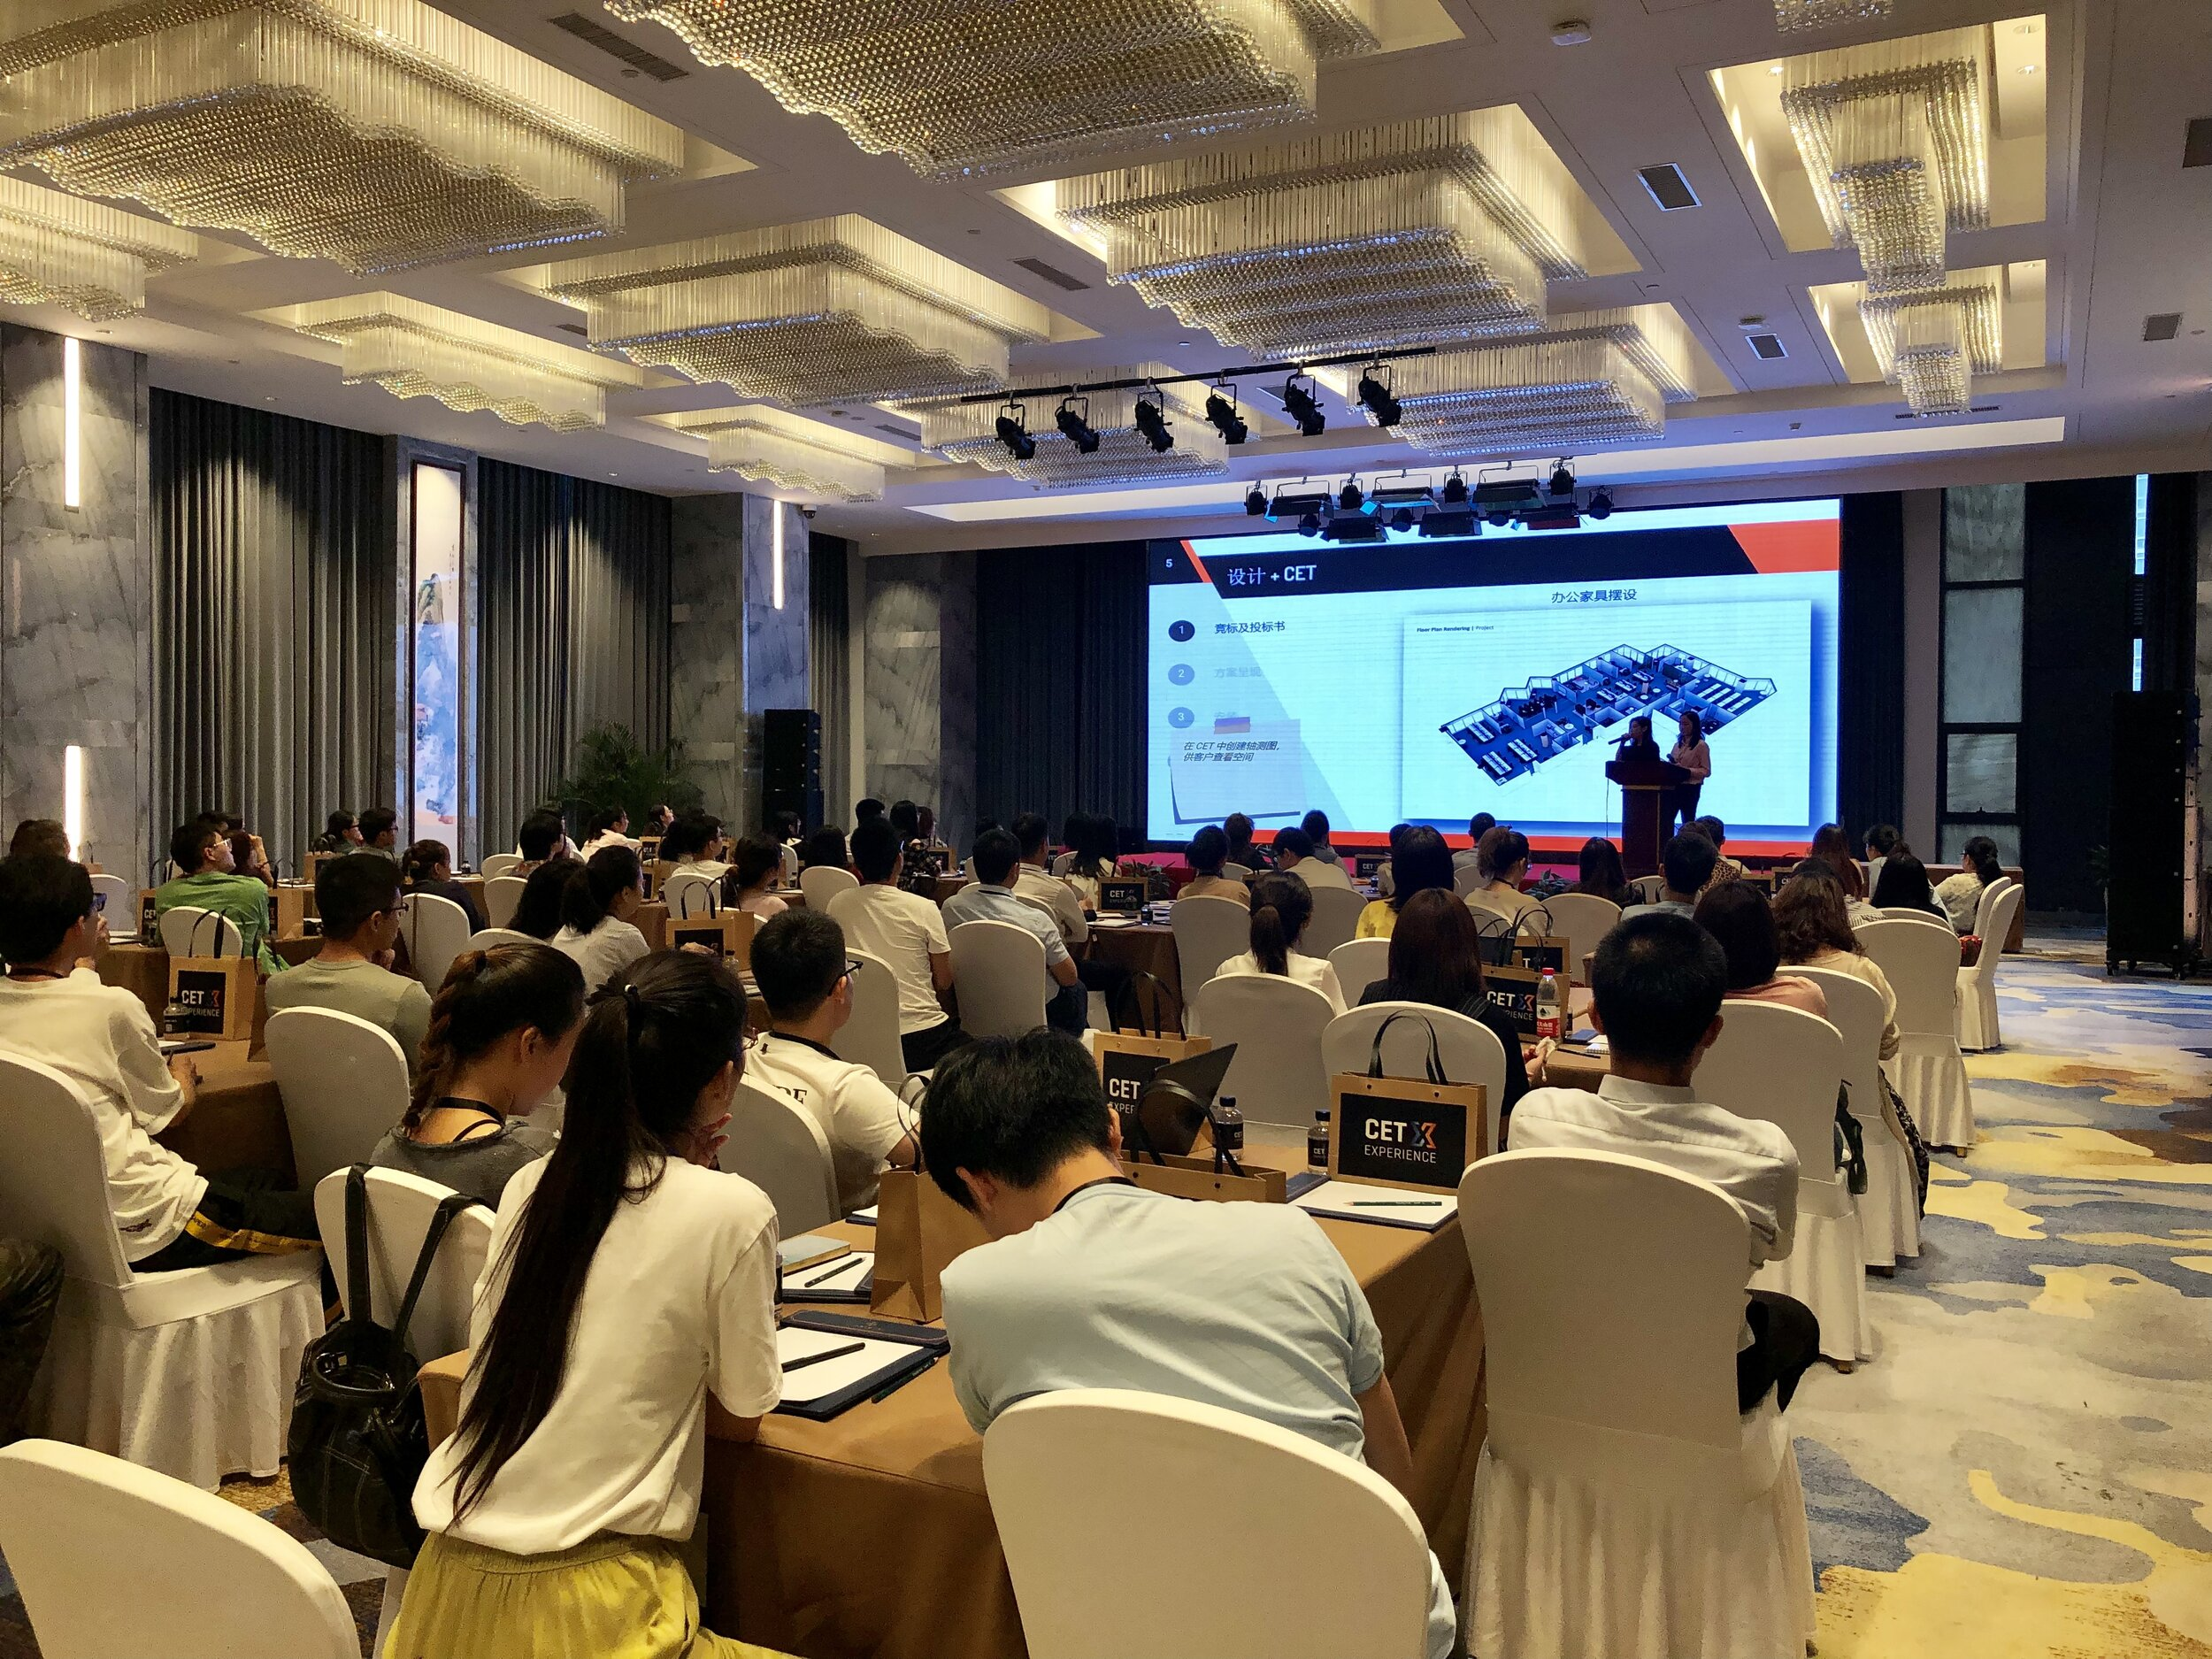 A session at the 2019 CET Experience in China